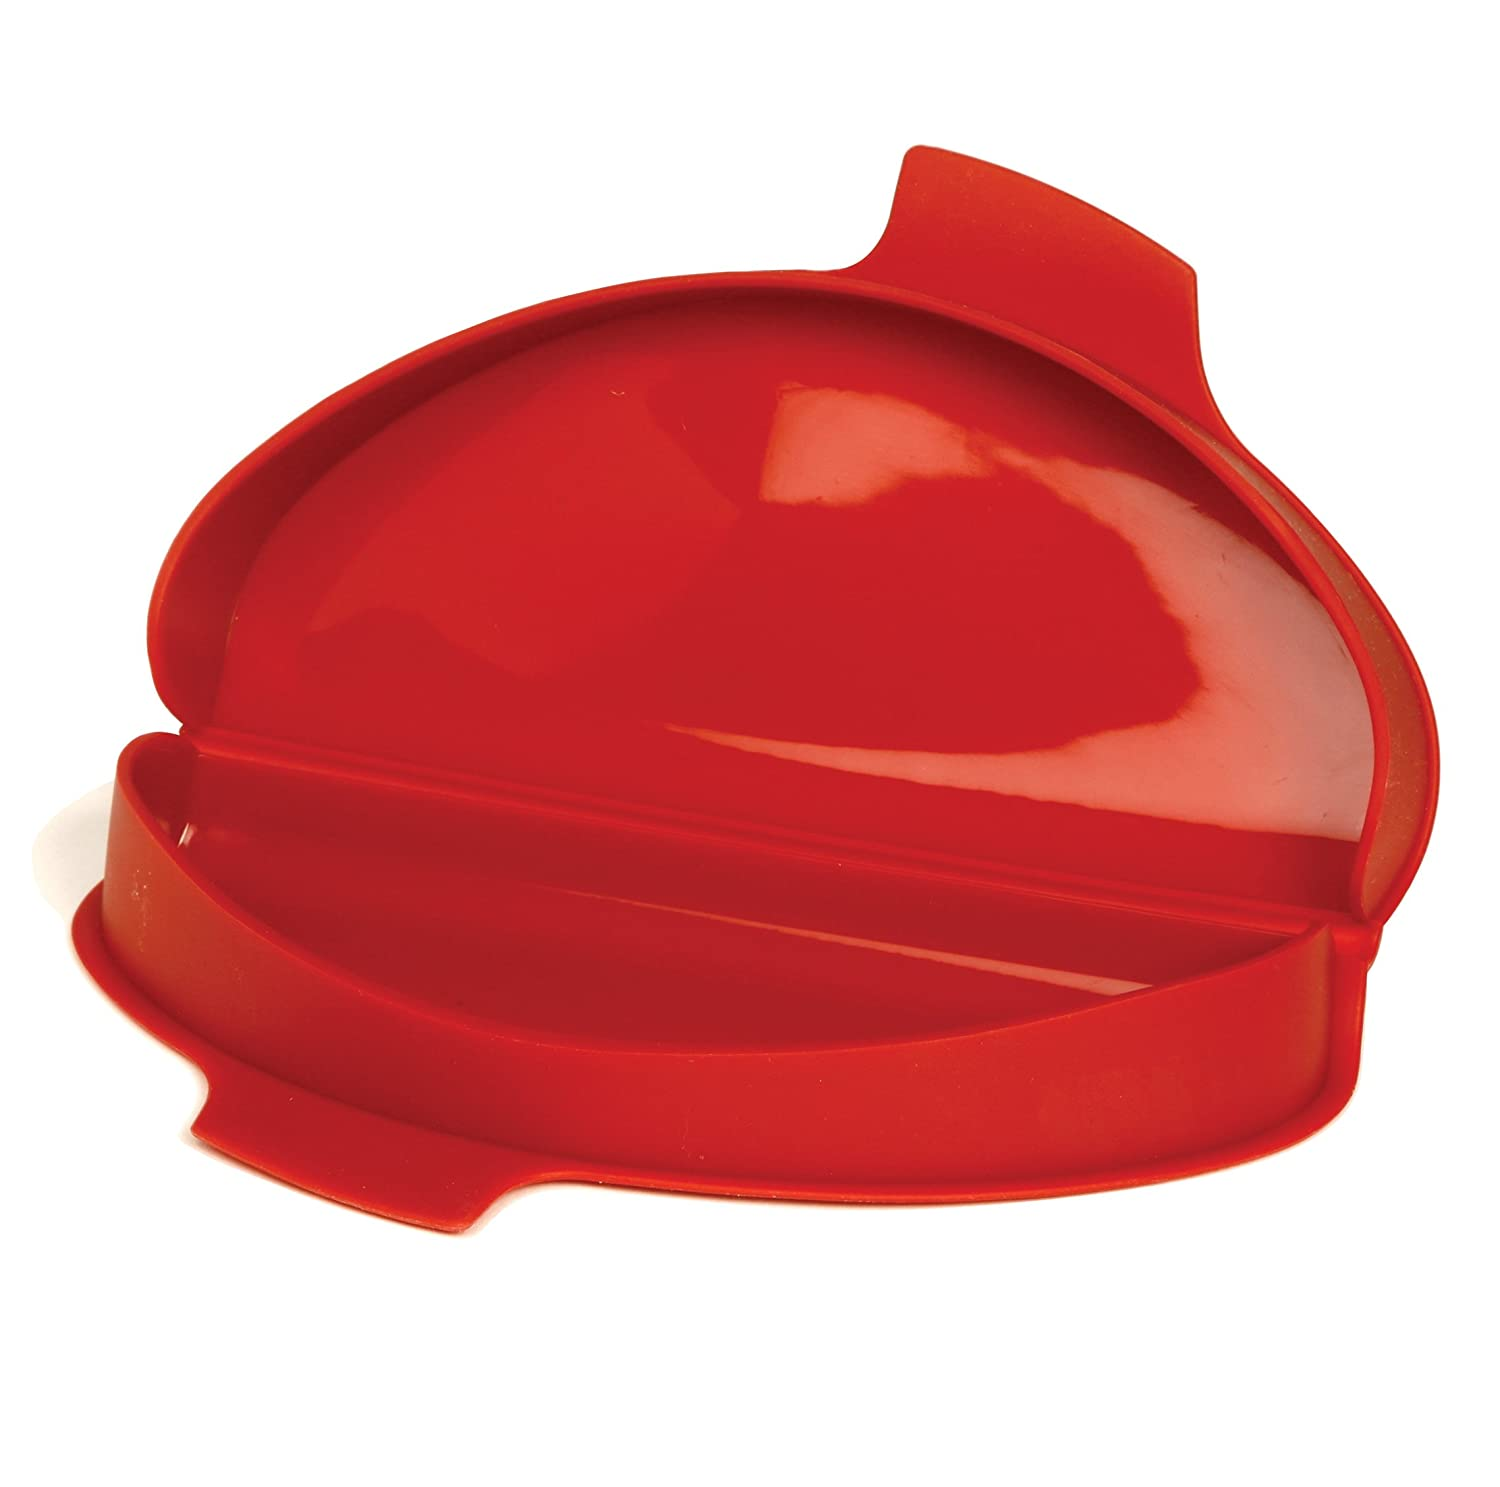 Norpro Silicone Omlette Pan, Red 930